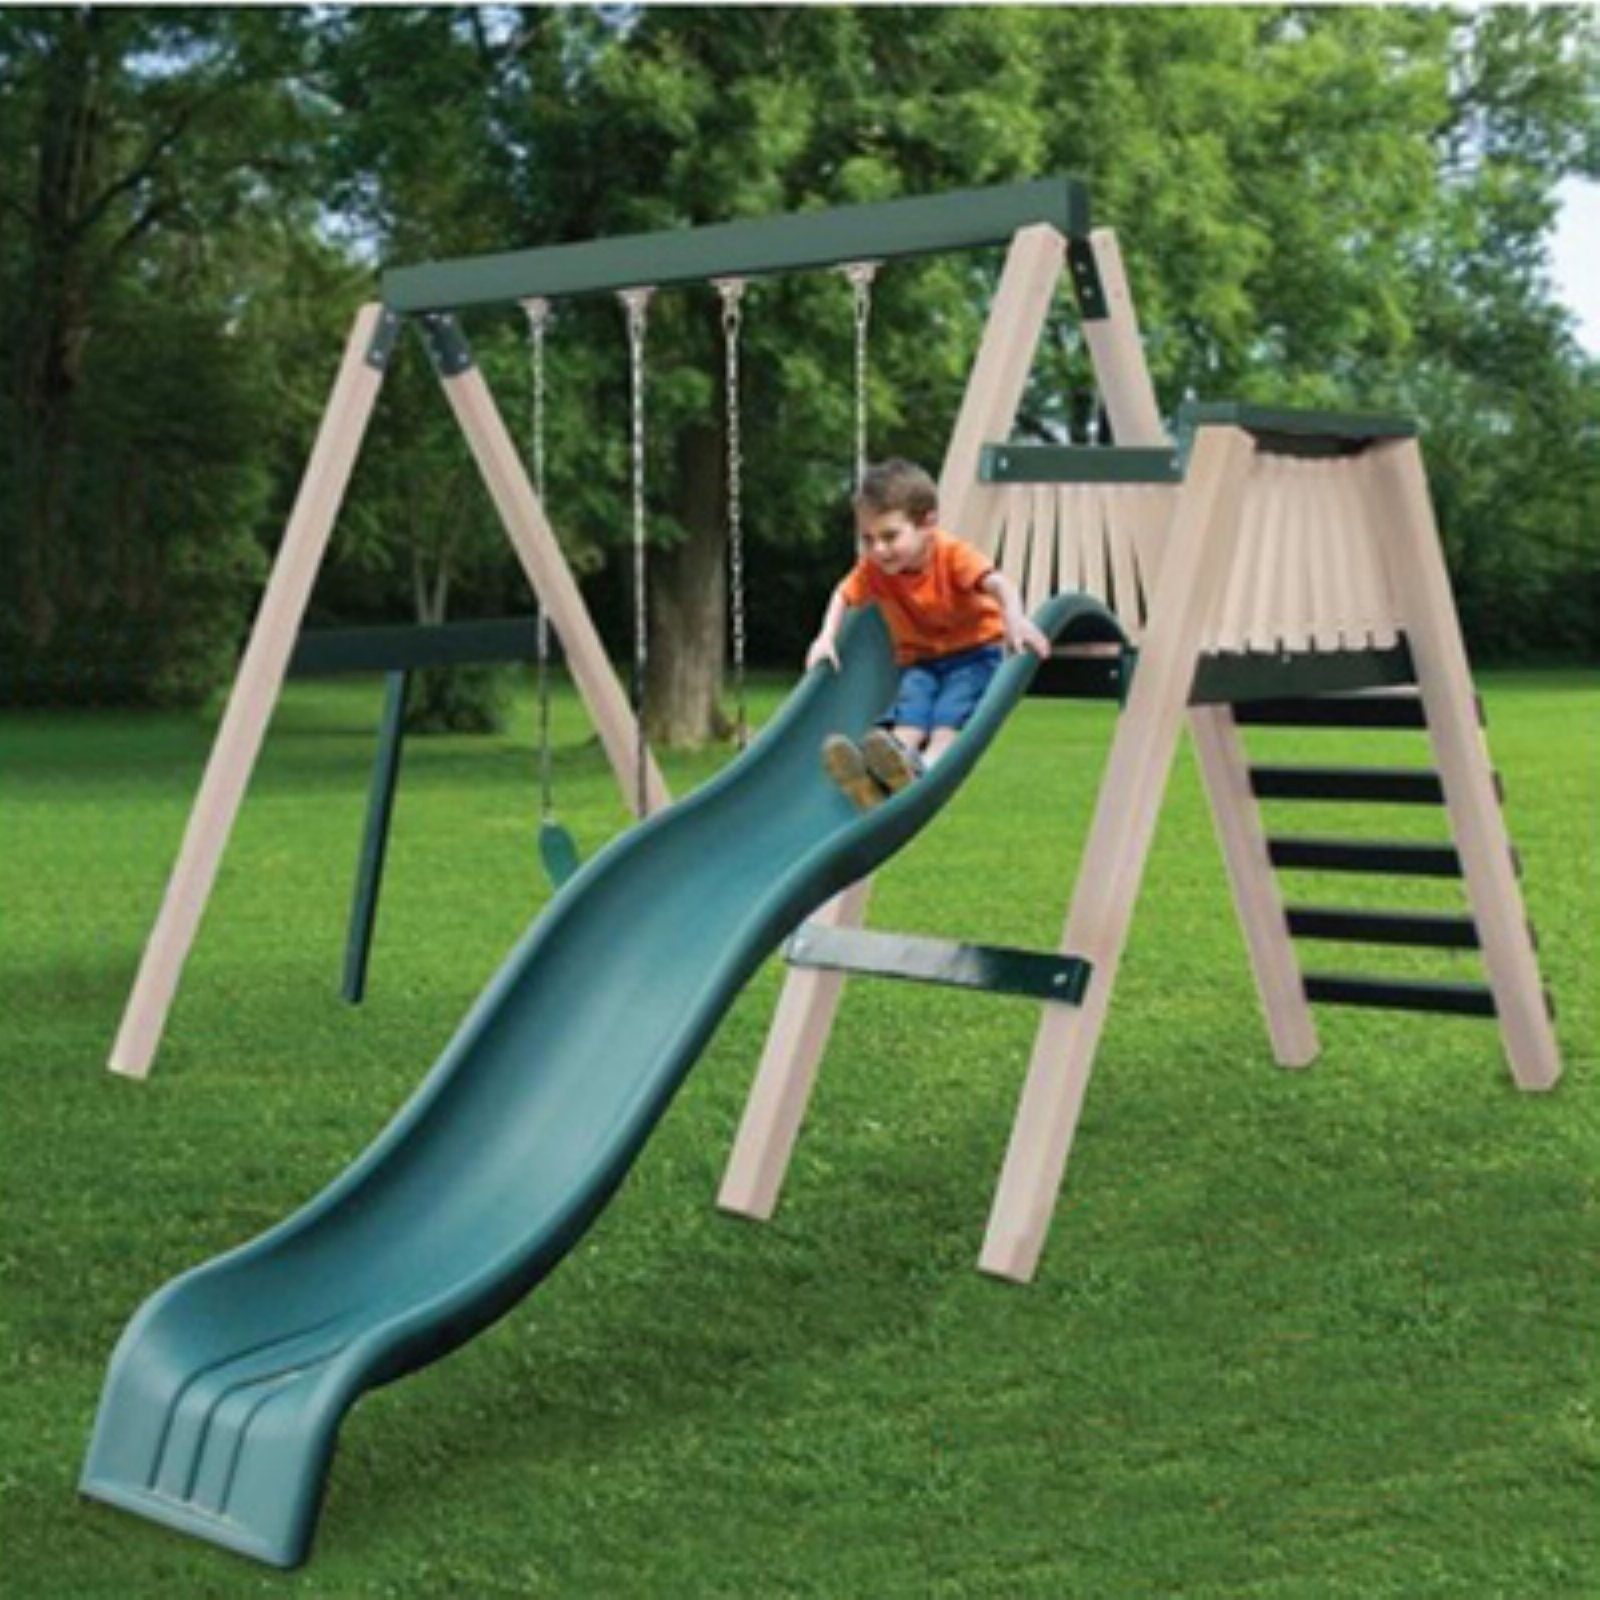 Congo Swing N Monkey 2 Station Play Set - Green and Sand